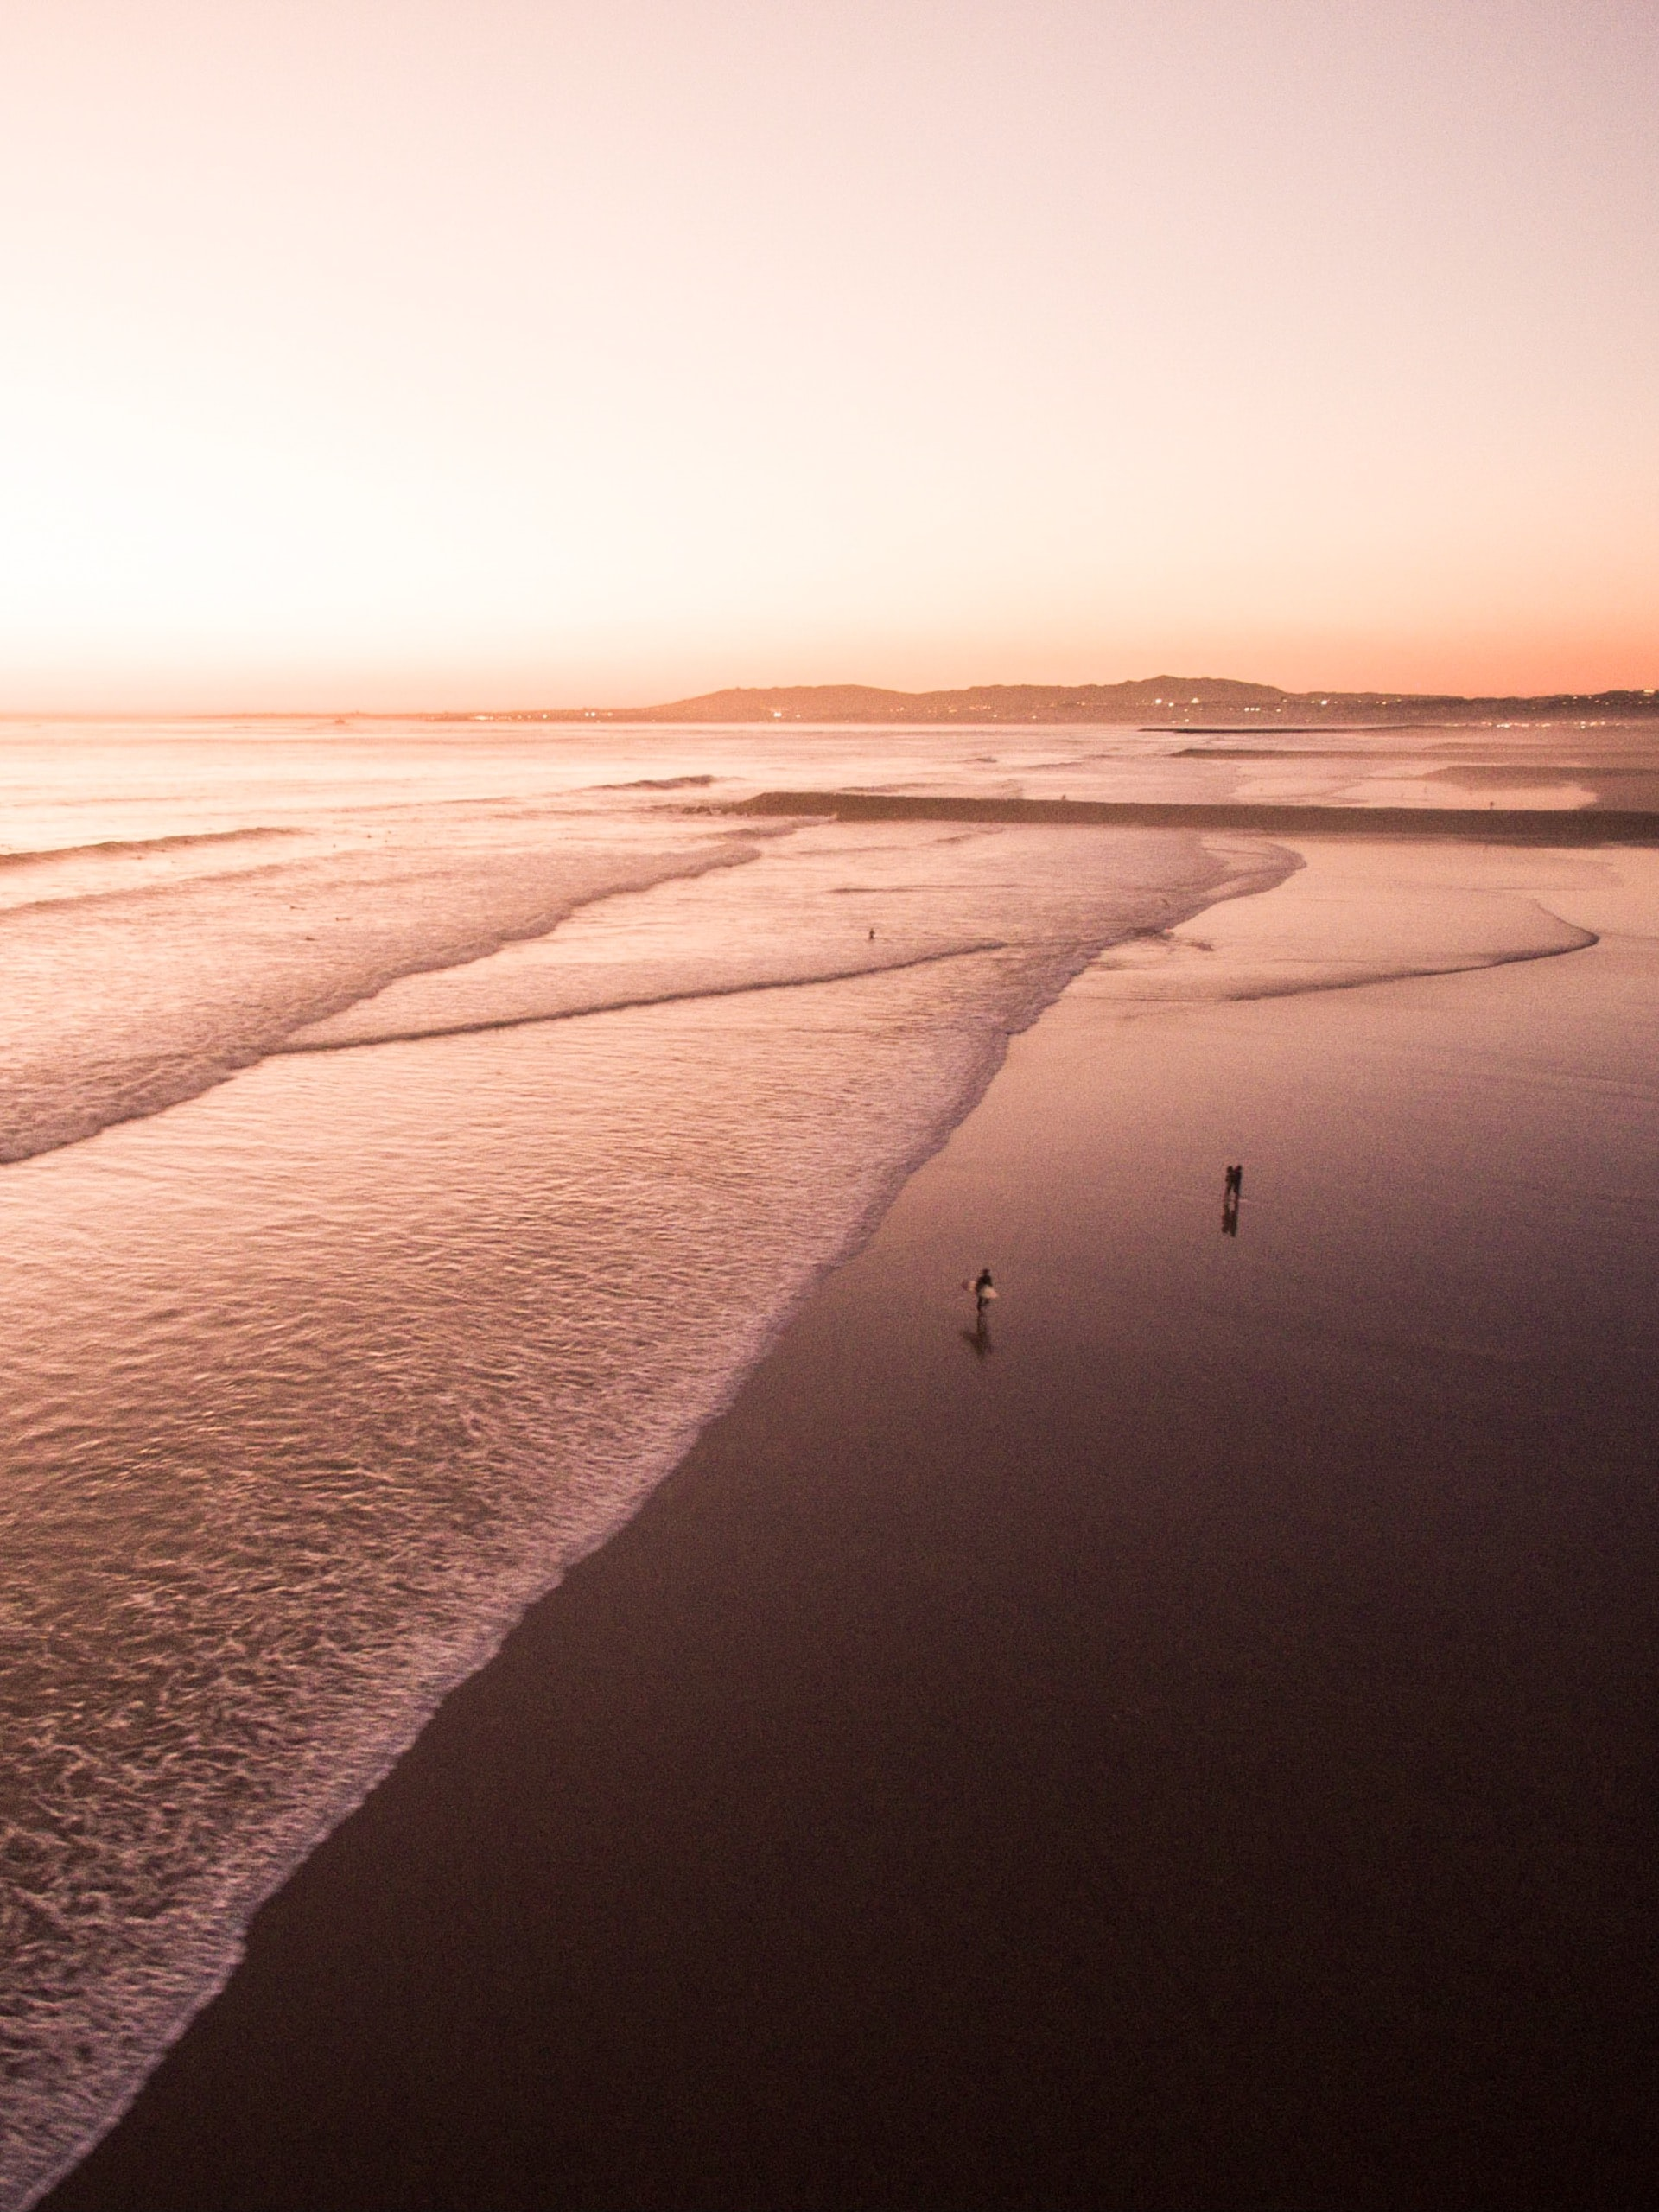 A few people and a surfer on a large beach.